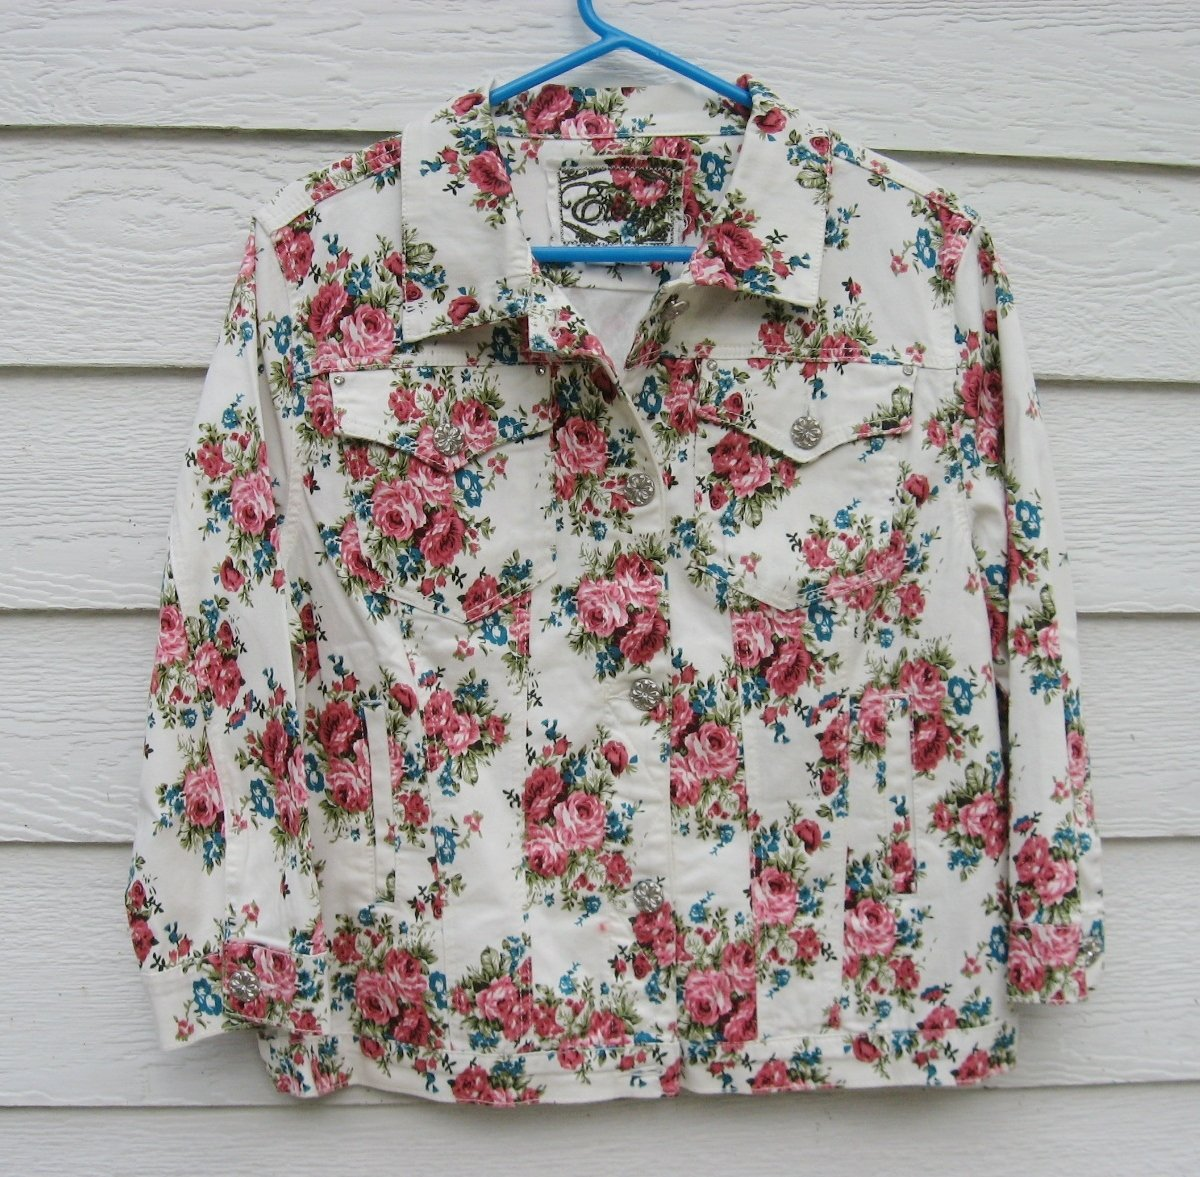 Ethyl Floral Jacket Large L 40 Chest White Pink Flowers Unlined